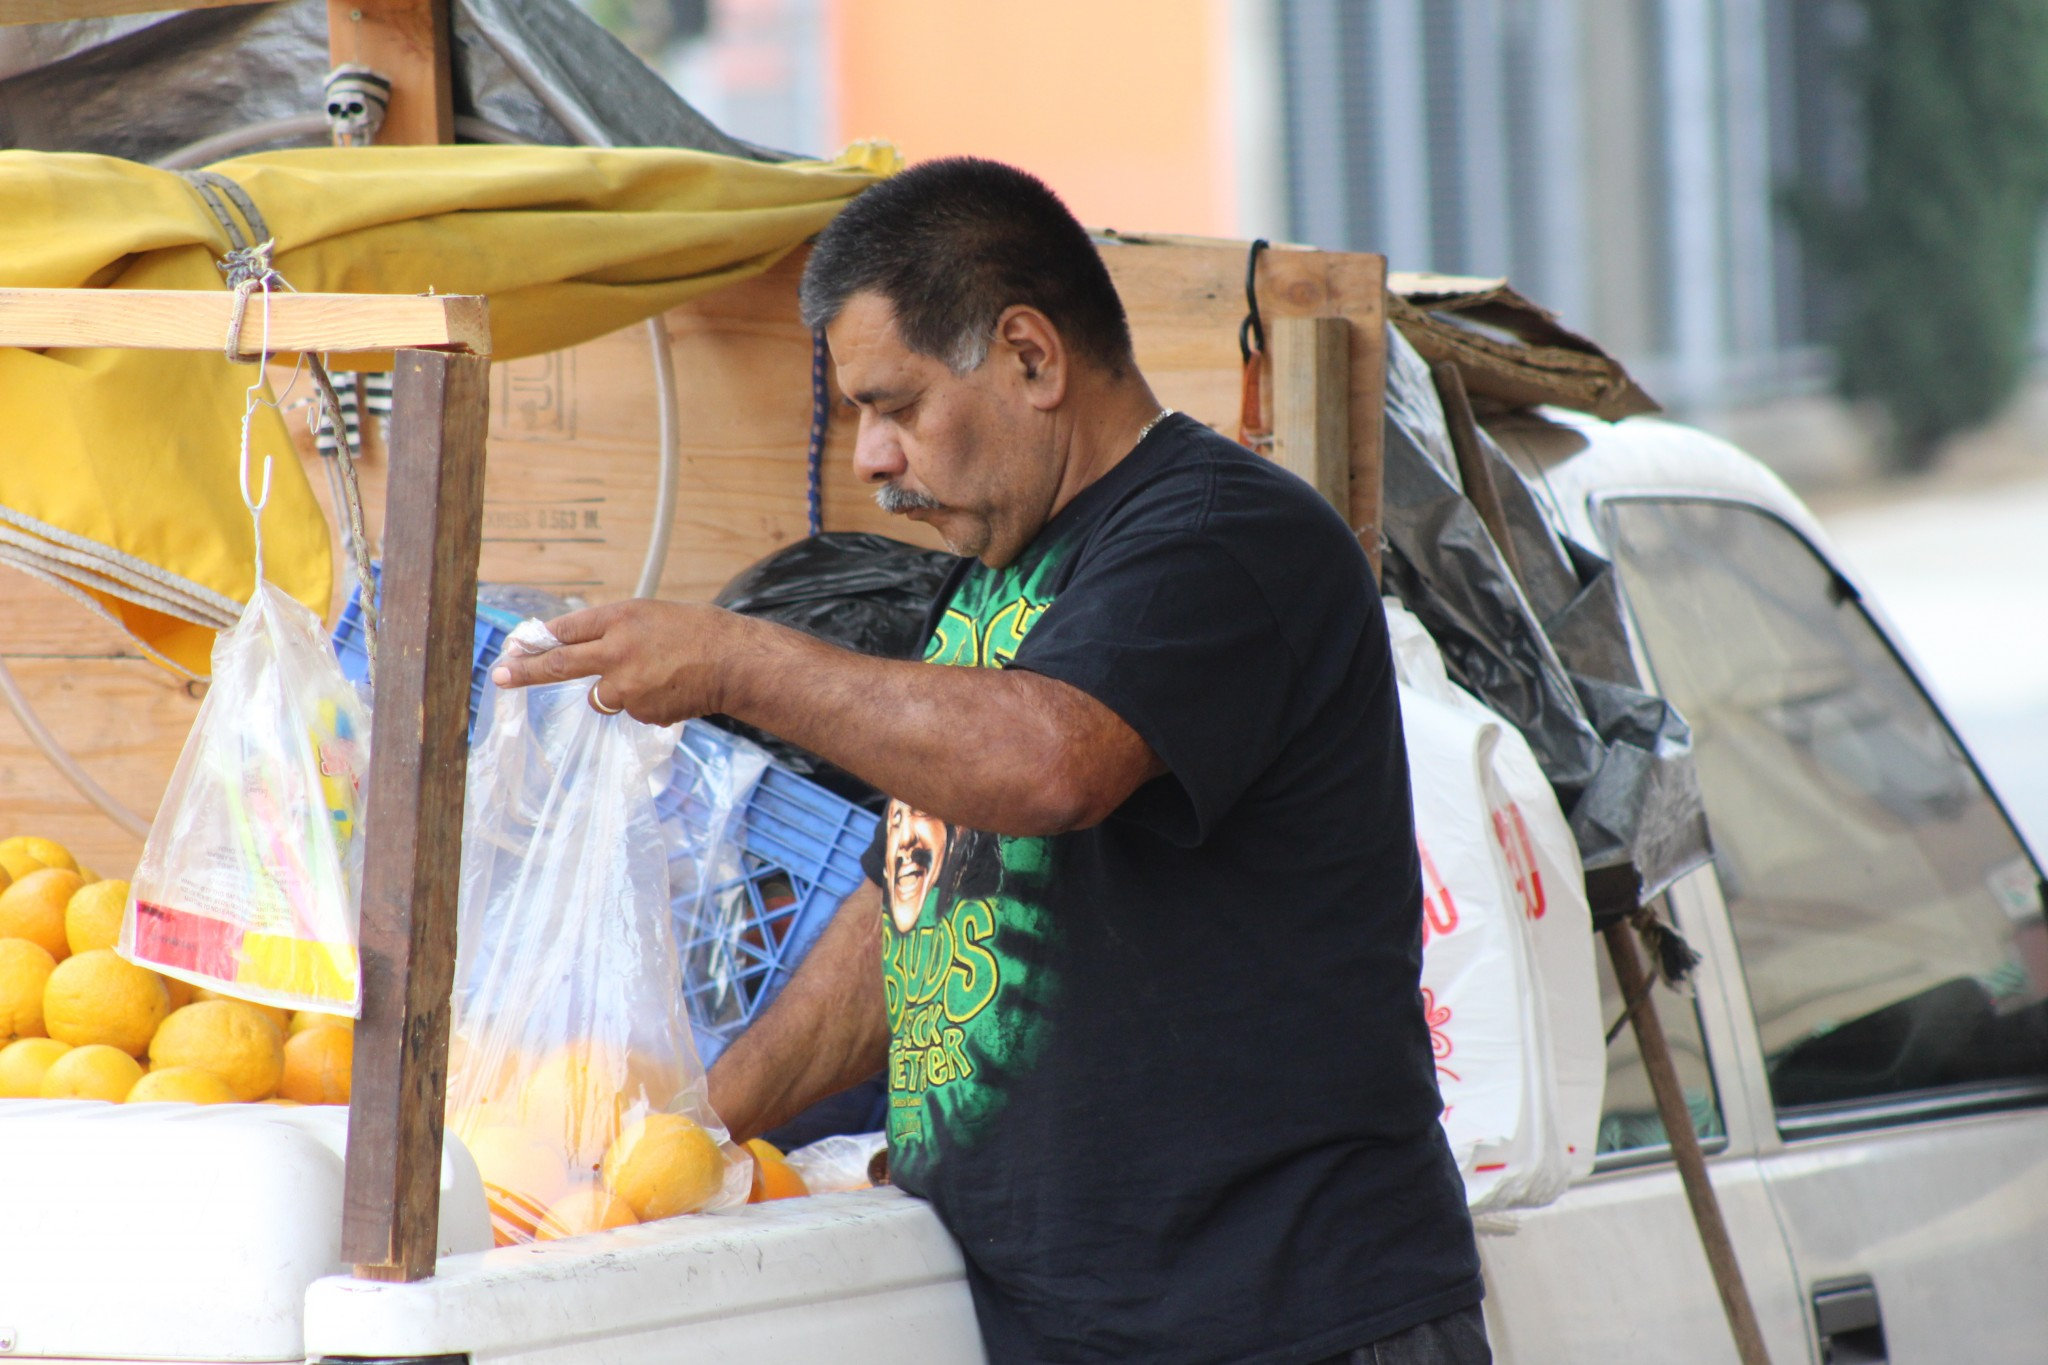 Estaban Romero in front of his truck. He sells fruit to make ends meet, while he hopes for his $16,000 wage claim to result in back pay. (Photo: Karen Foshay)